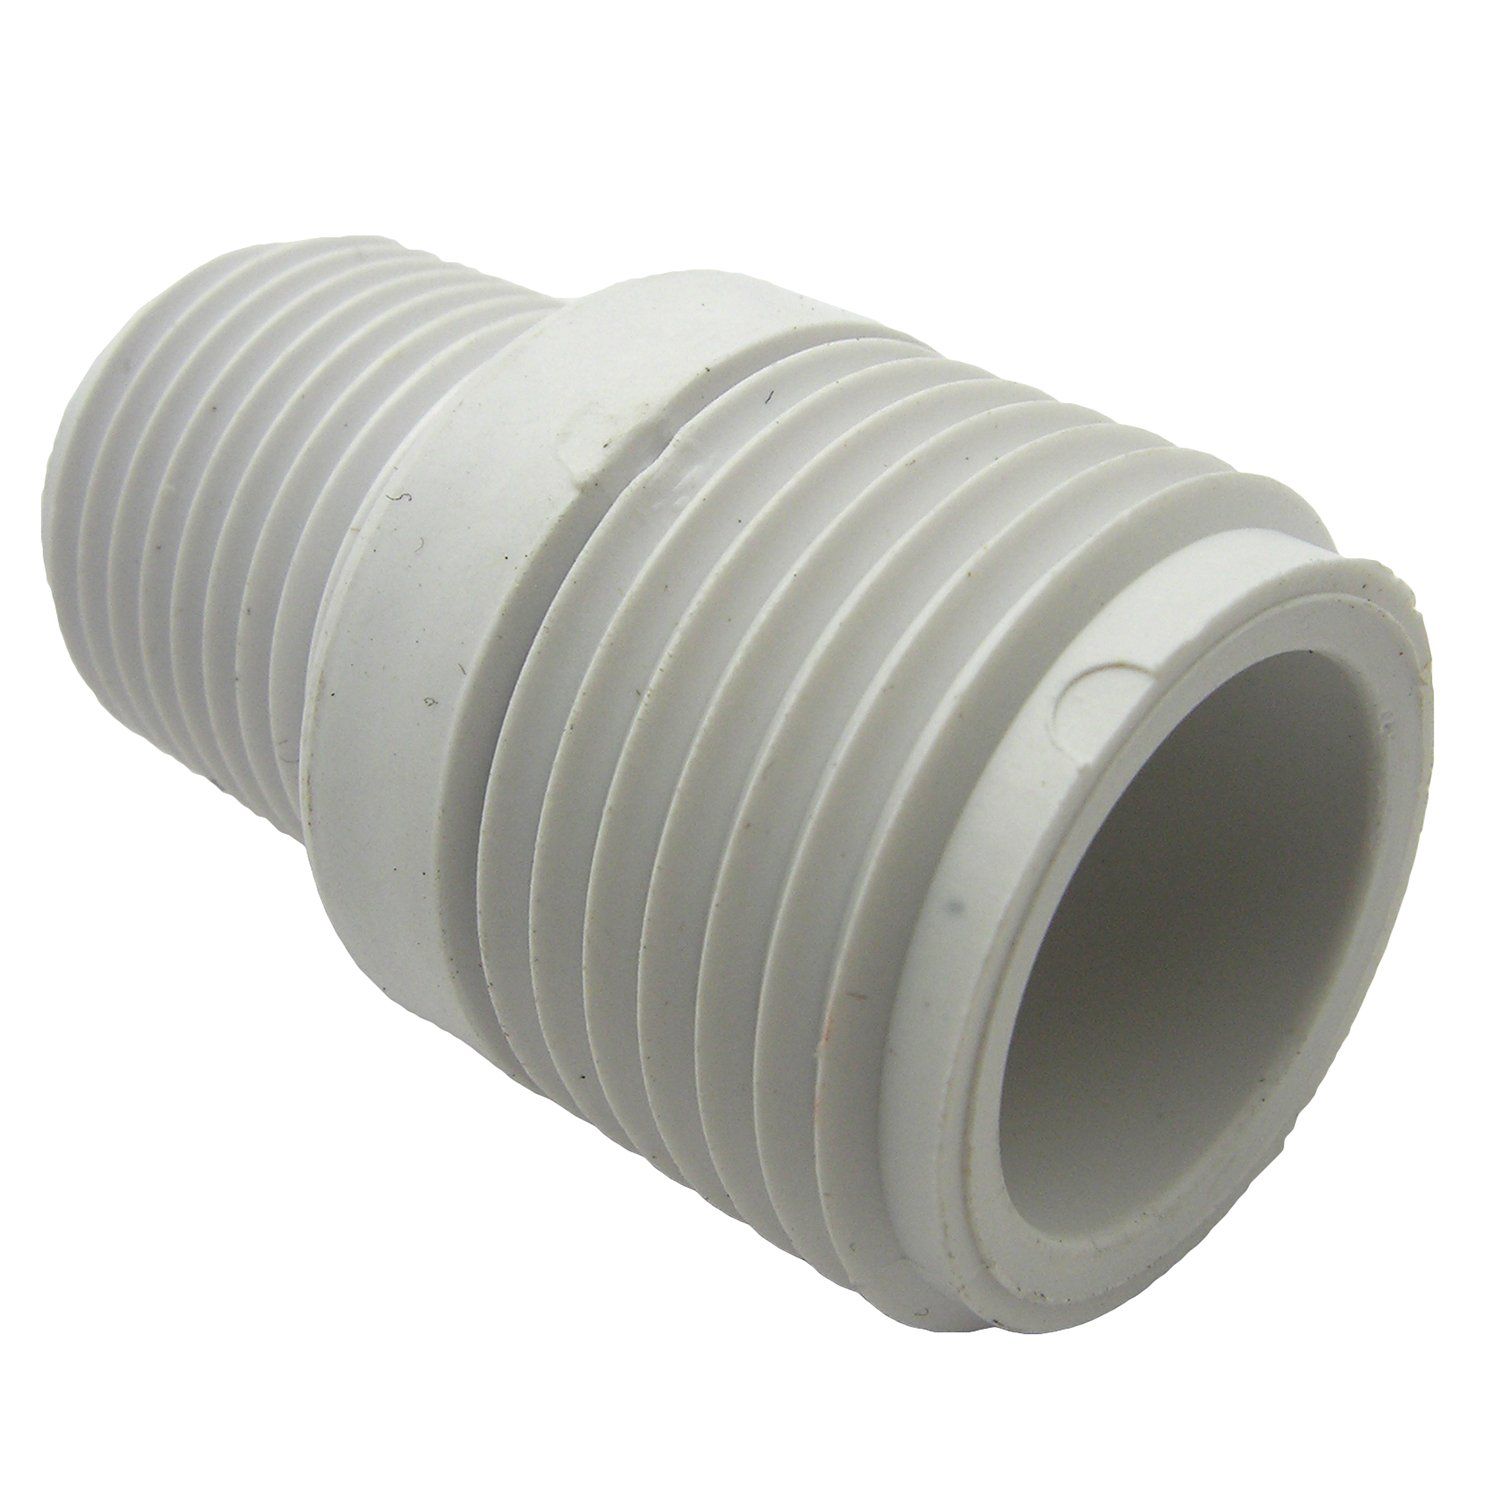 Perfect LASCO 15 1631 PVC Hose Adapter With 3/4 Inch Male Hose Thread And 1/2 Inch  Male Pipe Thread     Amazon.com